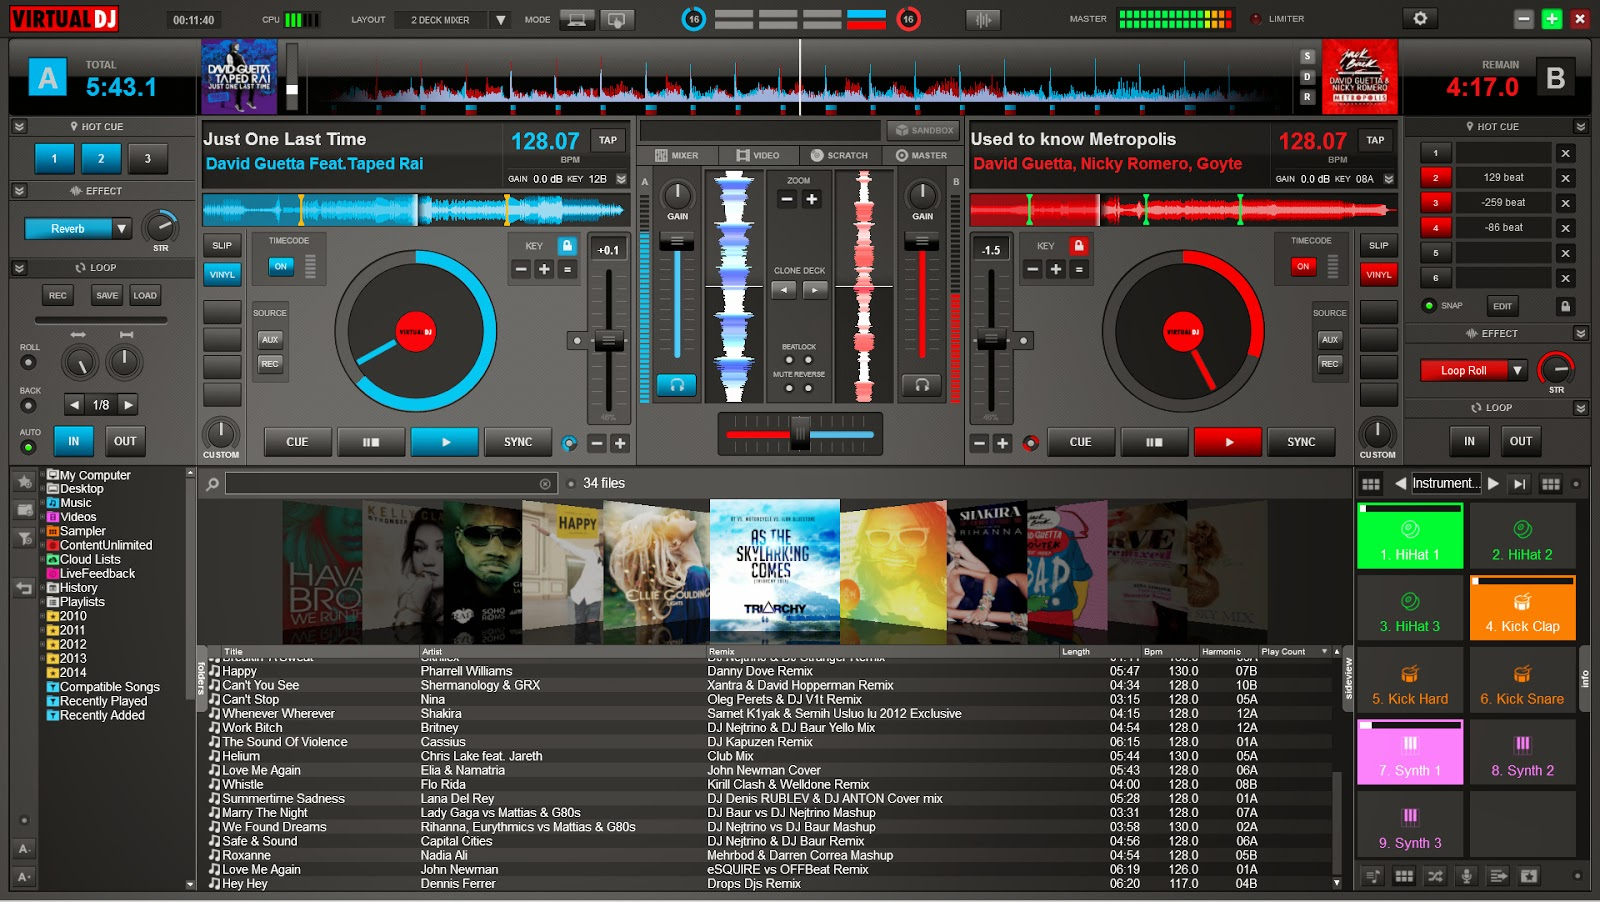 Virtualdj pro v5.2 incl patch latest release